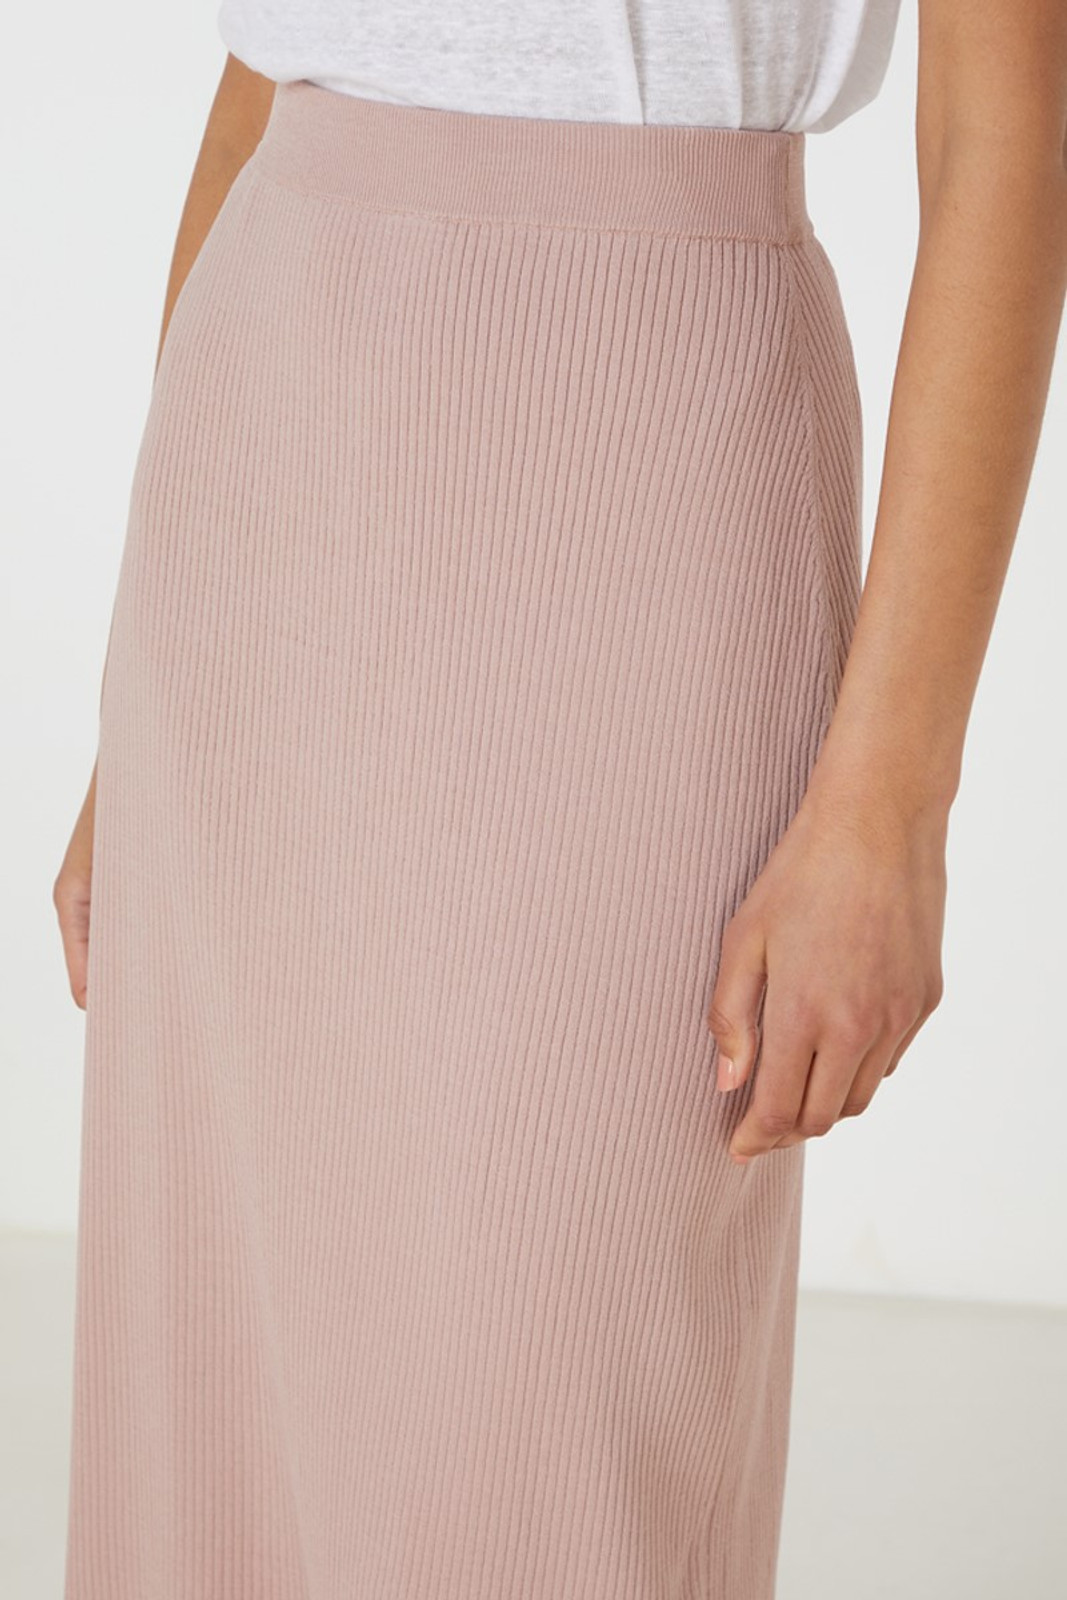 Elka Collective Airley Knit Skirt Pink  5